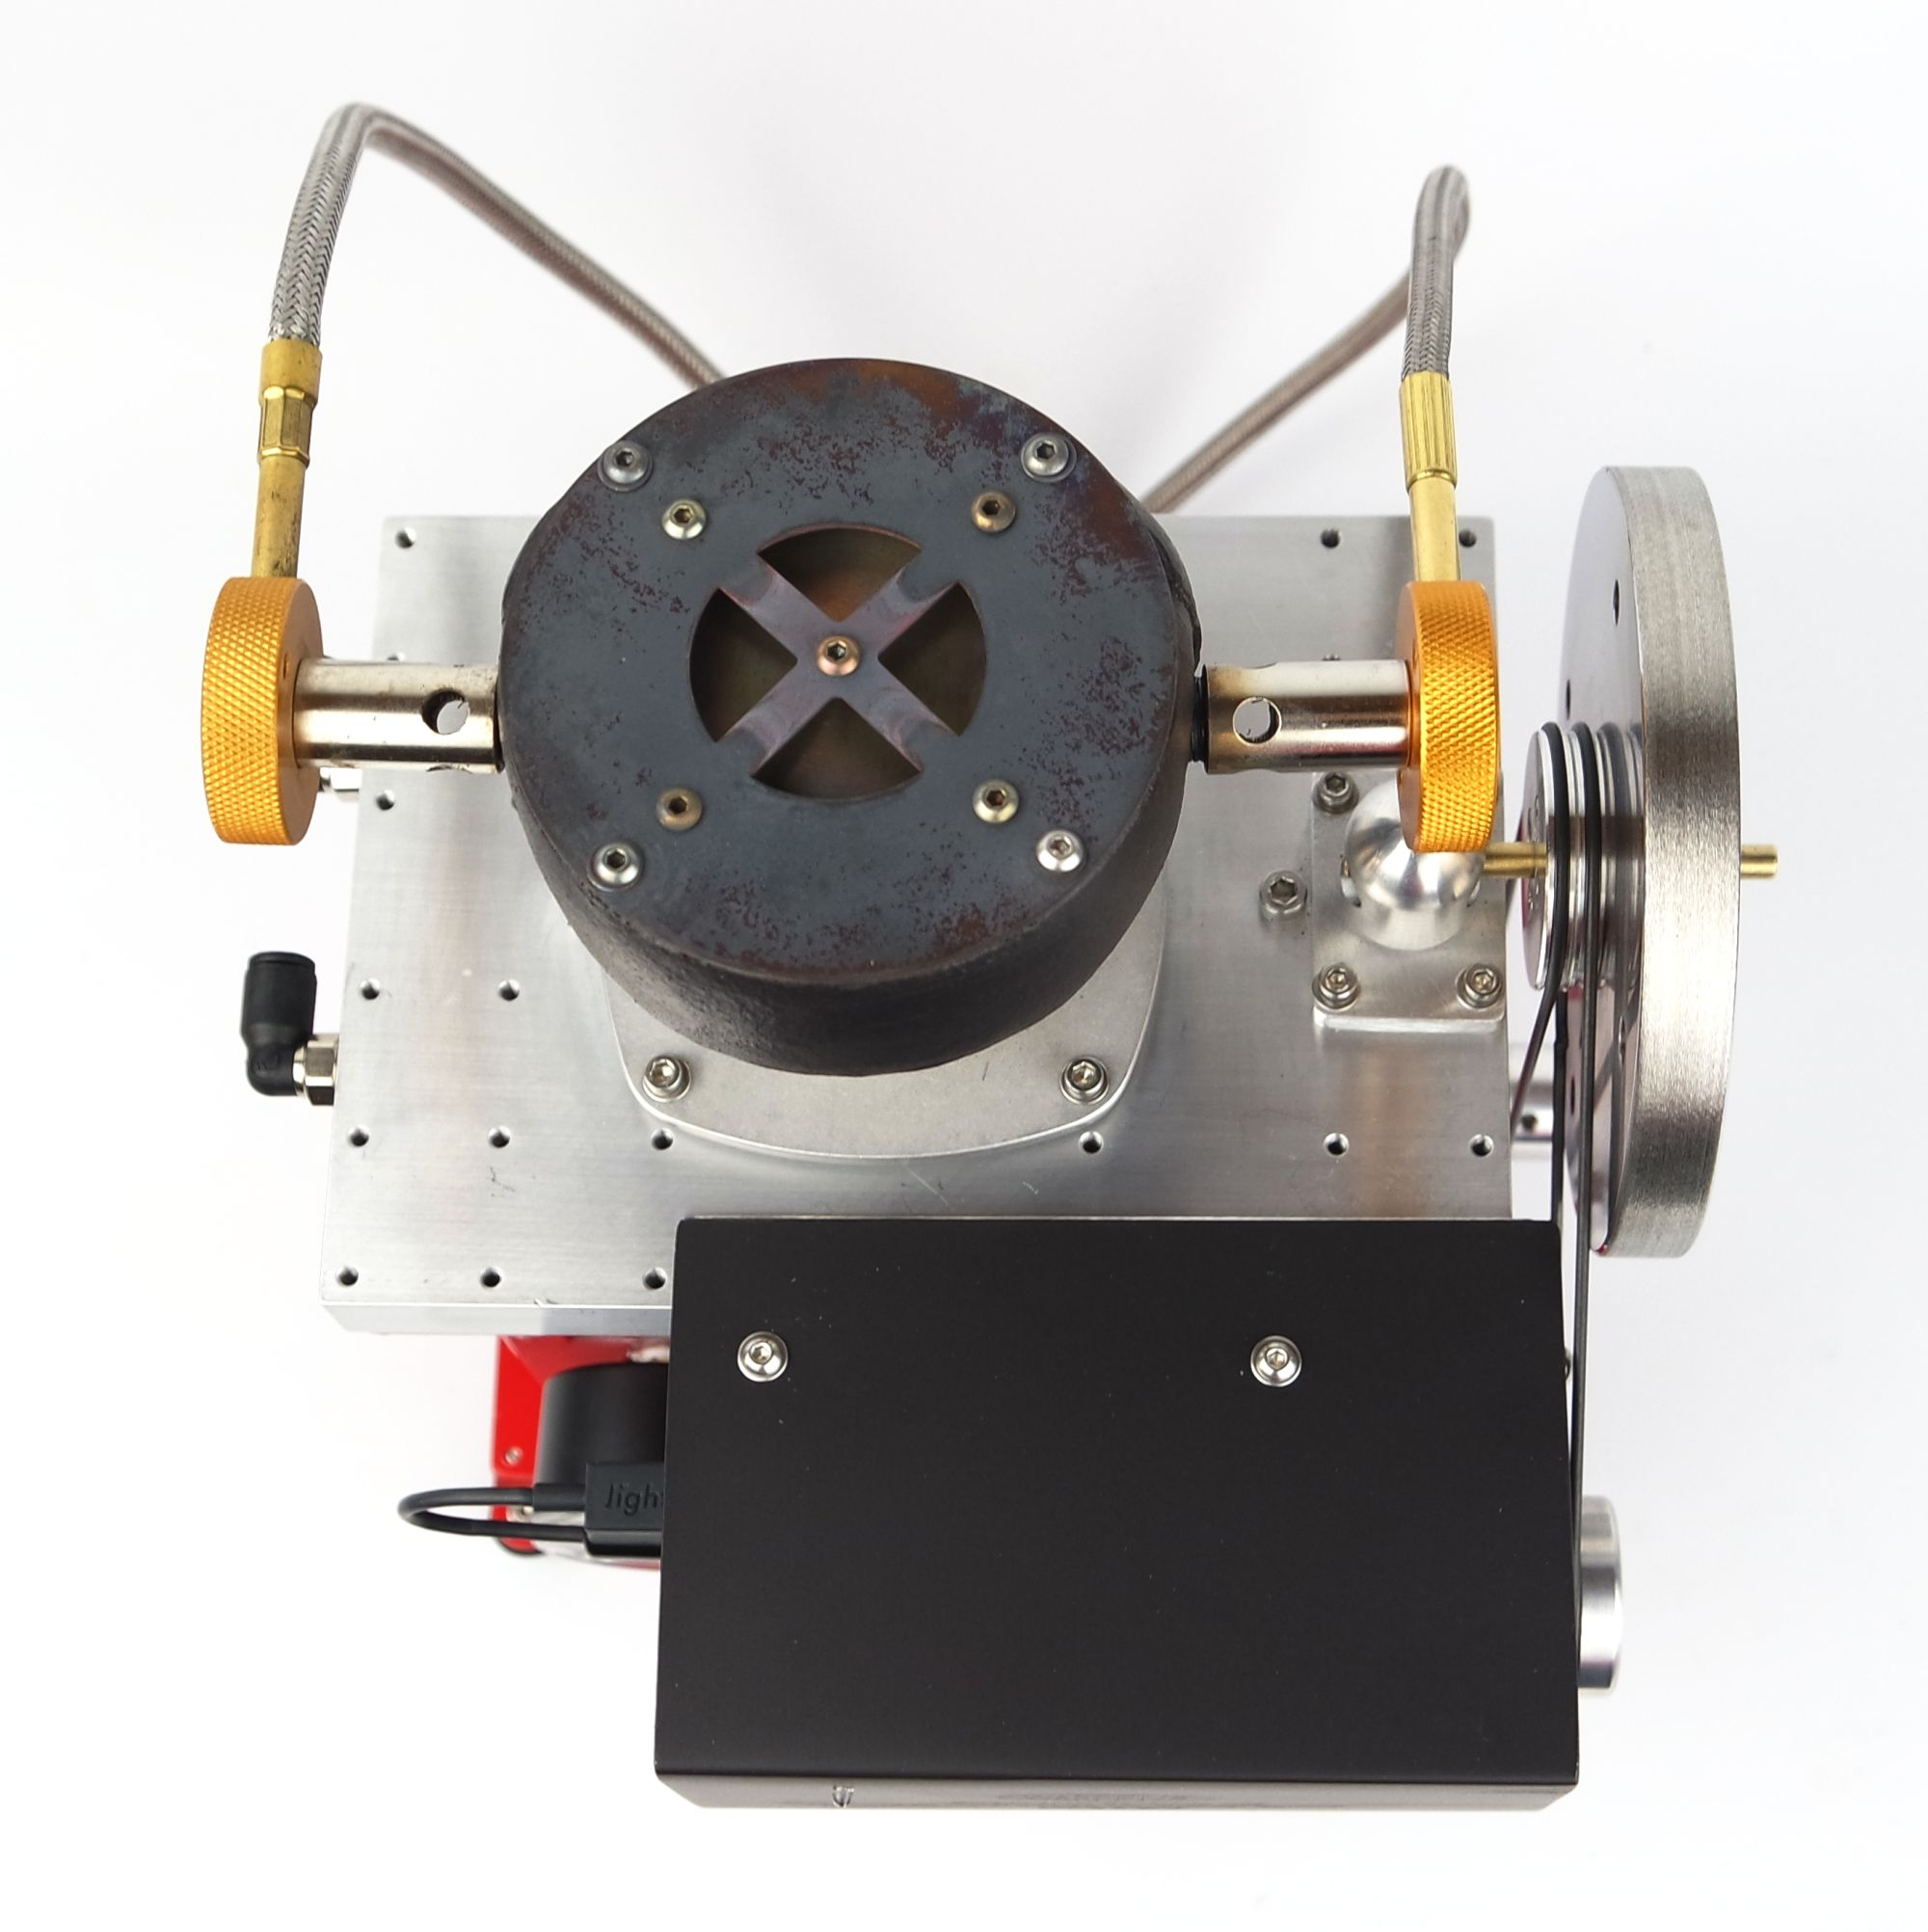 Experimental 14cc Stirling engine with Gamma configuration - view from top